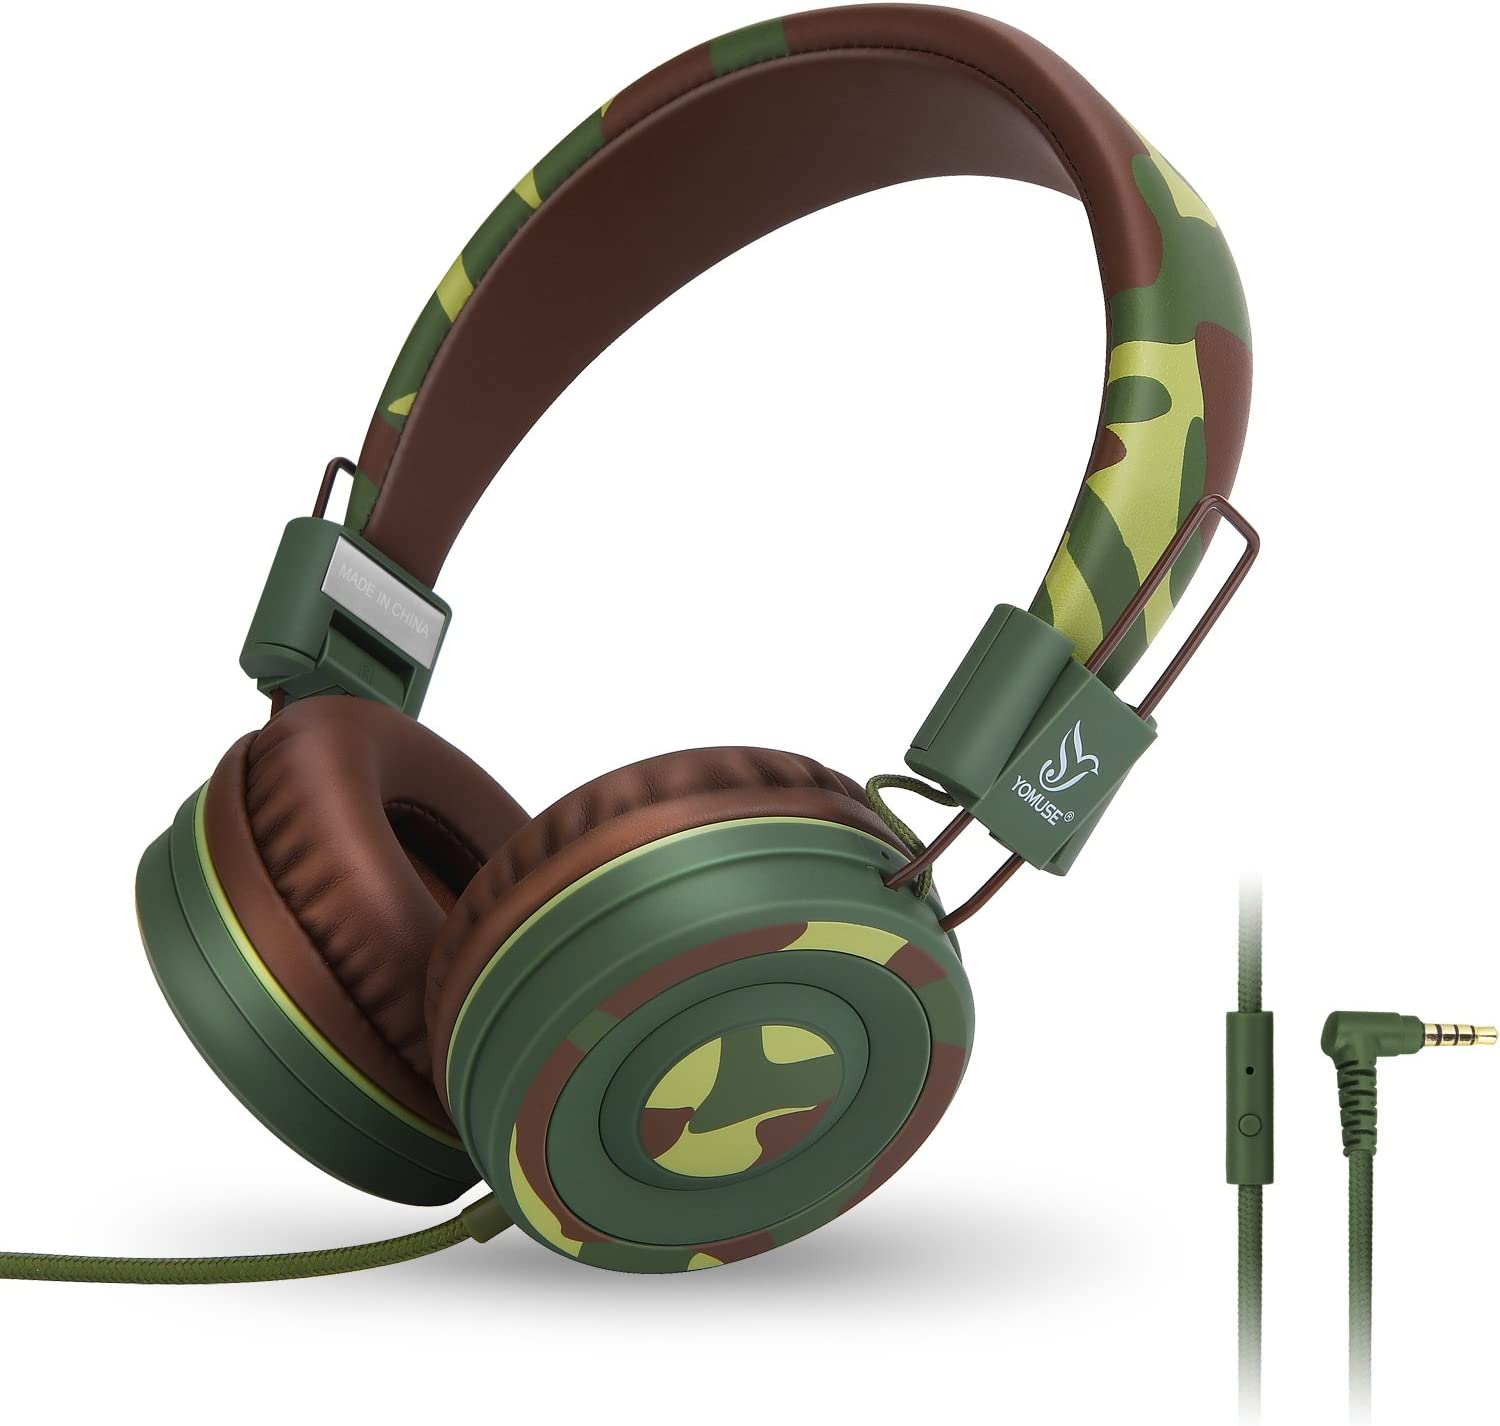 Yomuse C89 On Ear Foldable Headphones w/Microphone, Adjustable Headband for Kids Adults, iPhone iPad iPod Computers Tablets Smartphones DVD, Camo Green